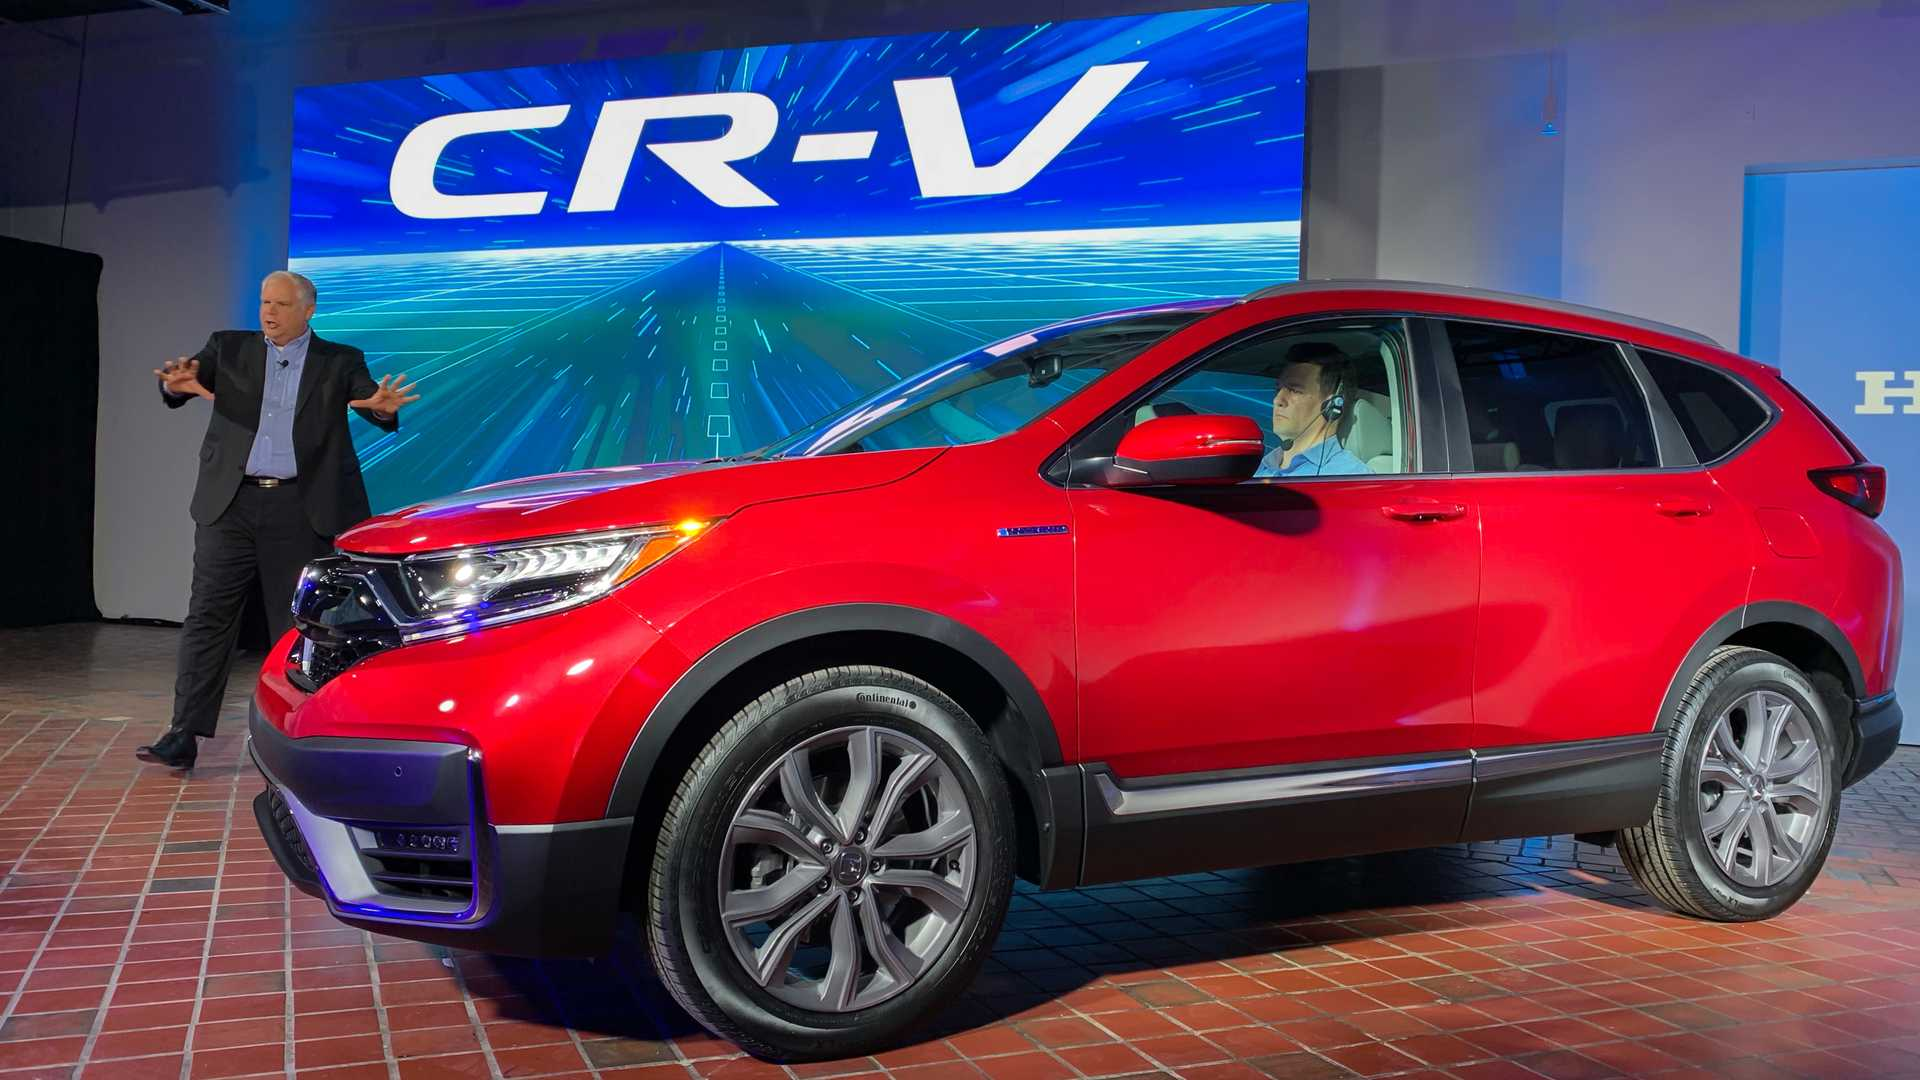 2020 Honda Crv Review.2020 Honda Cr V Debuts With Refreshed Styling Hybrid Version